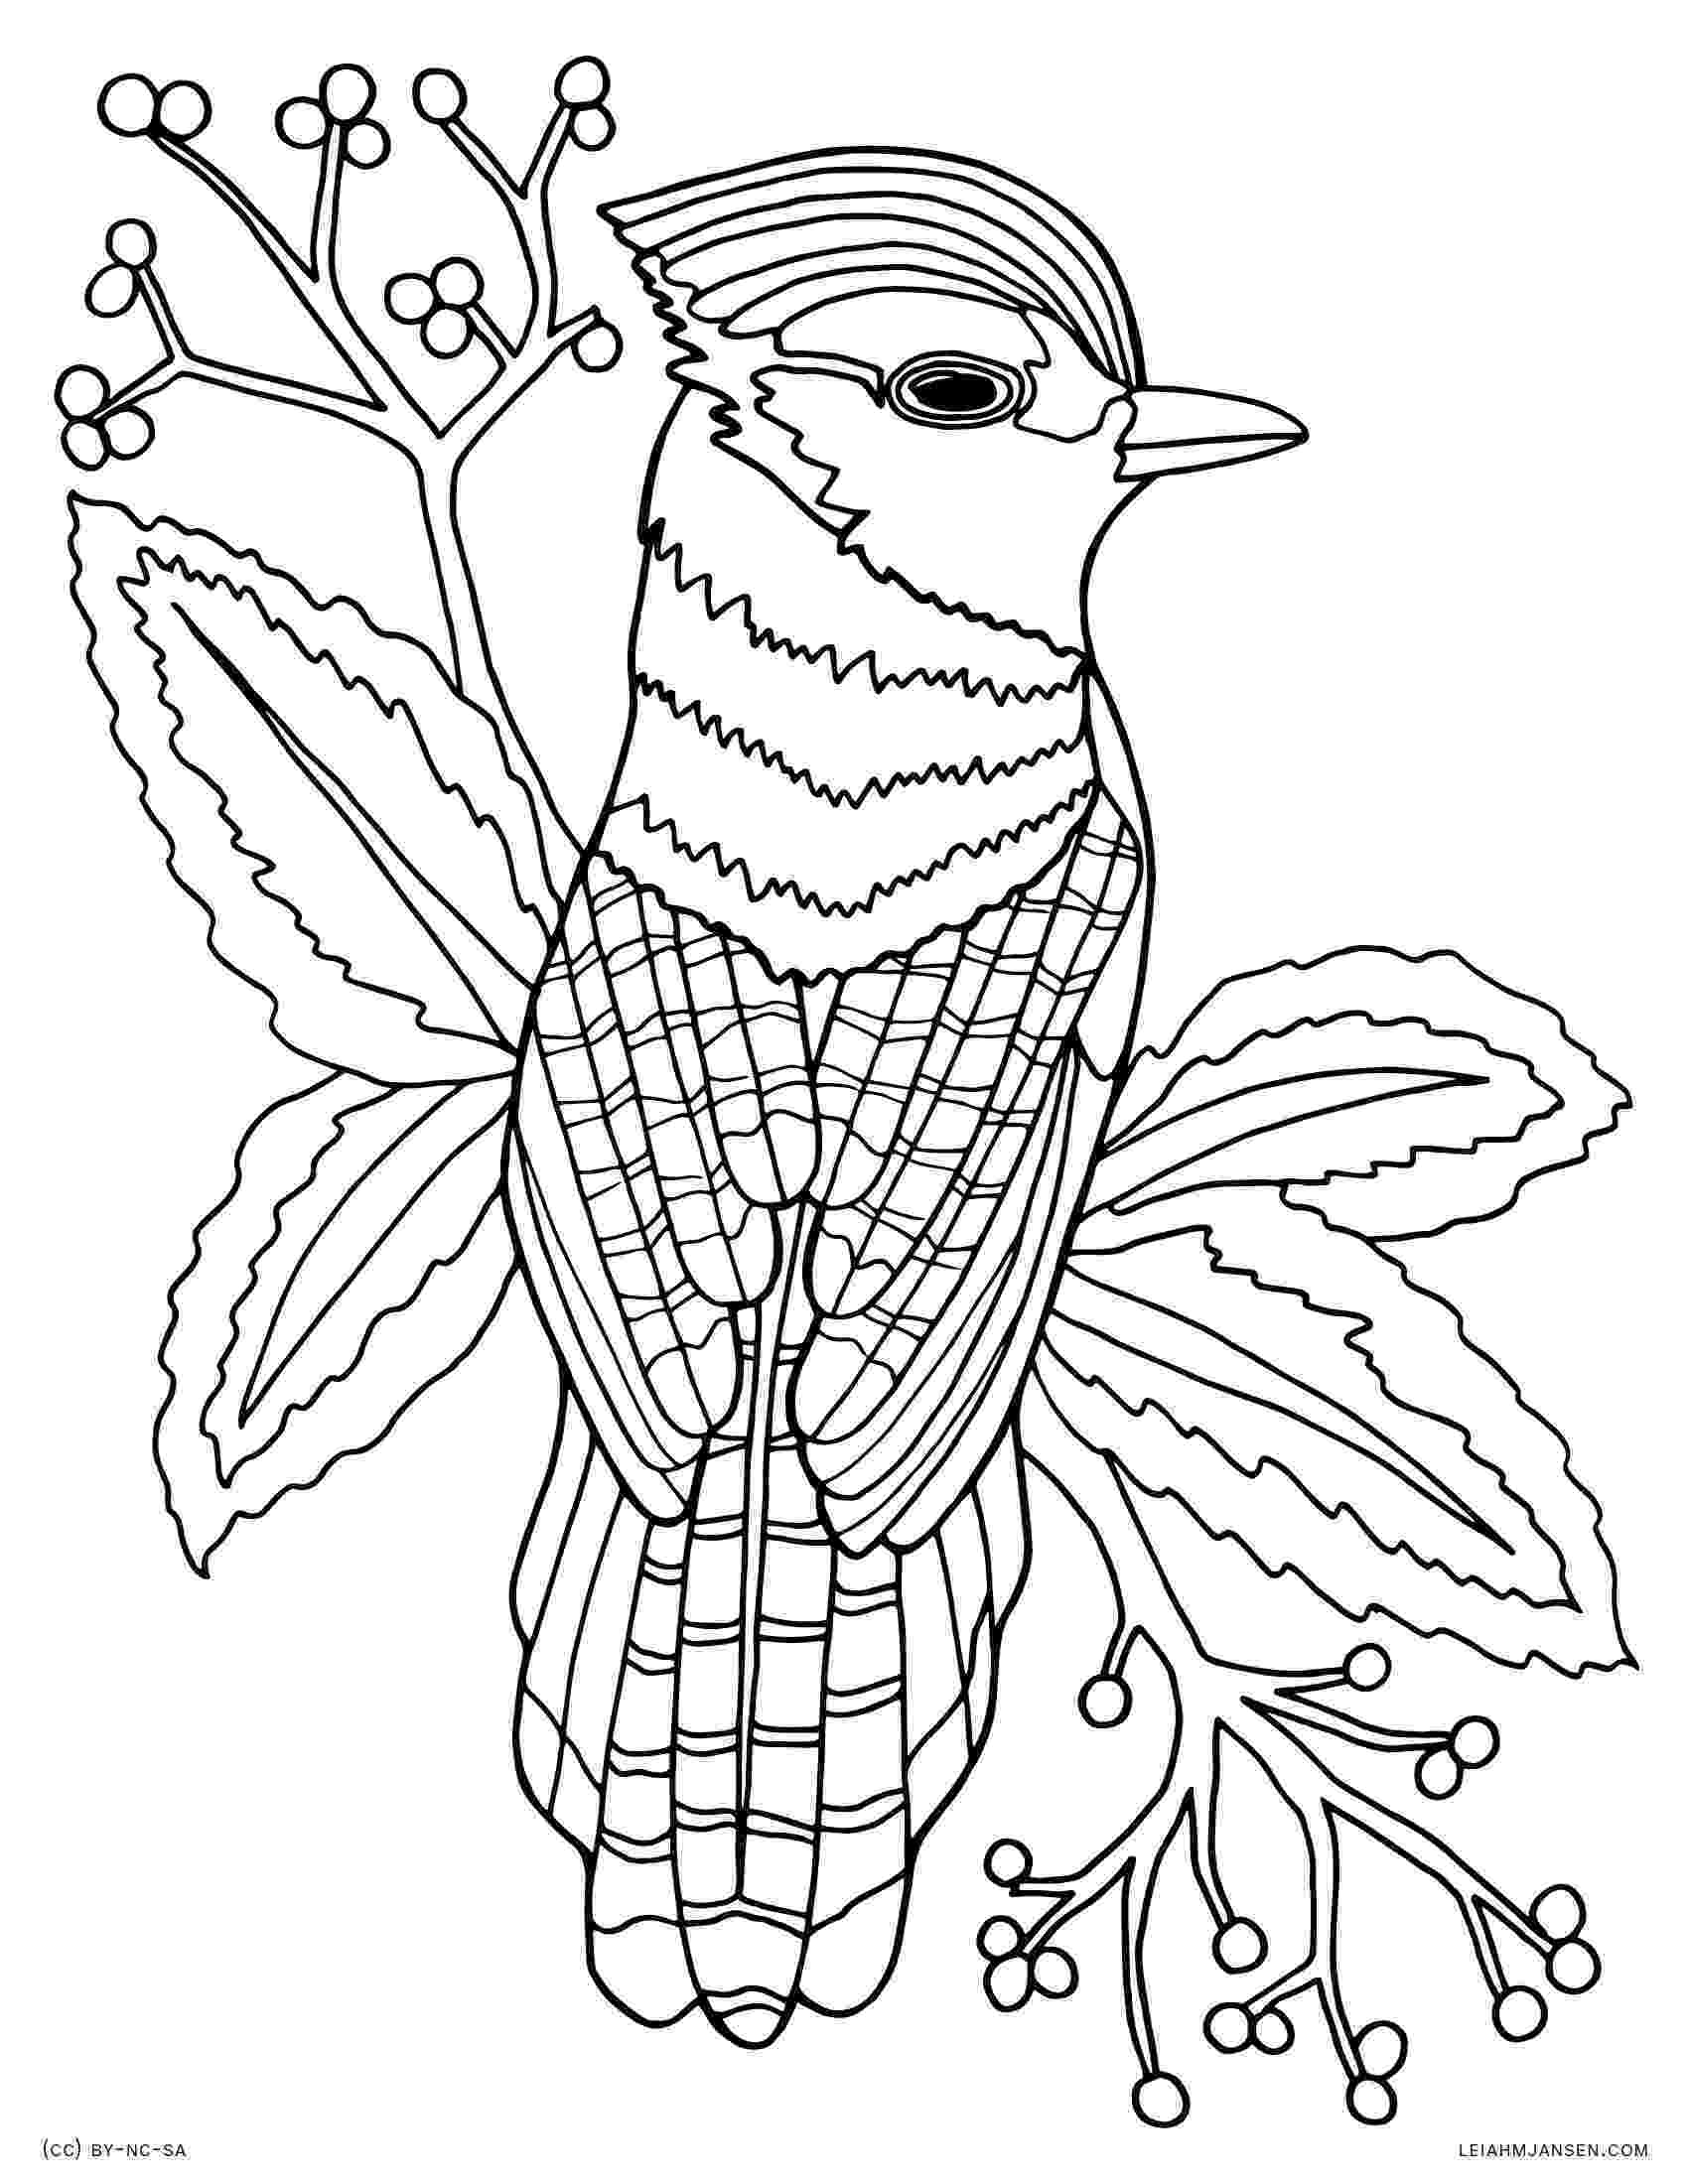 colouring pages for adults animals animal coloring pages pdf free adult coloring pages colouring adults animals pages for